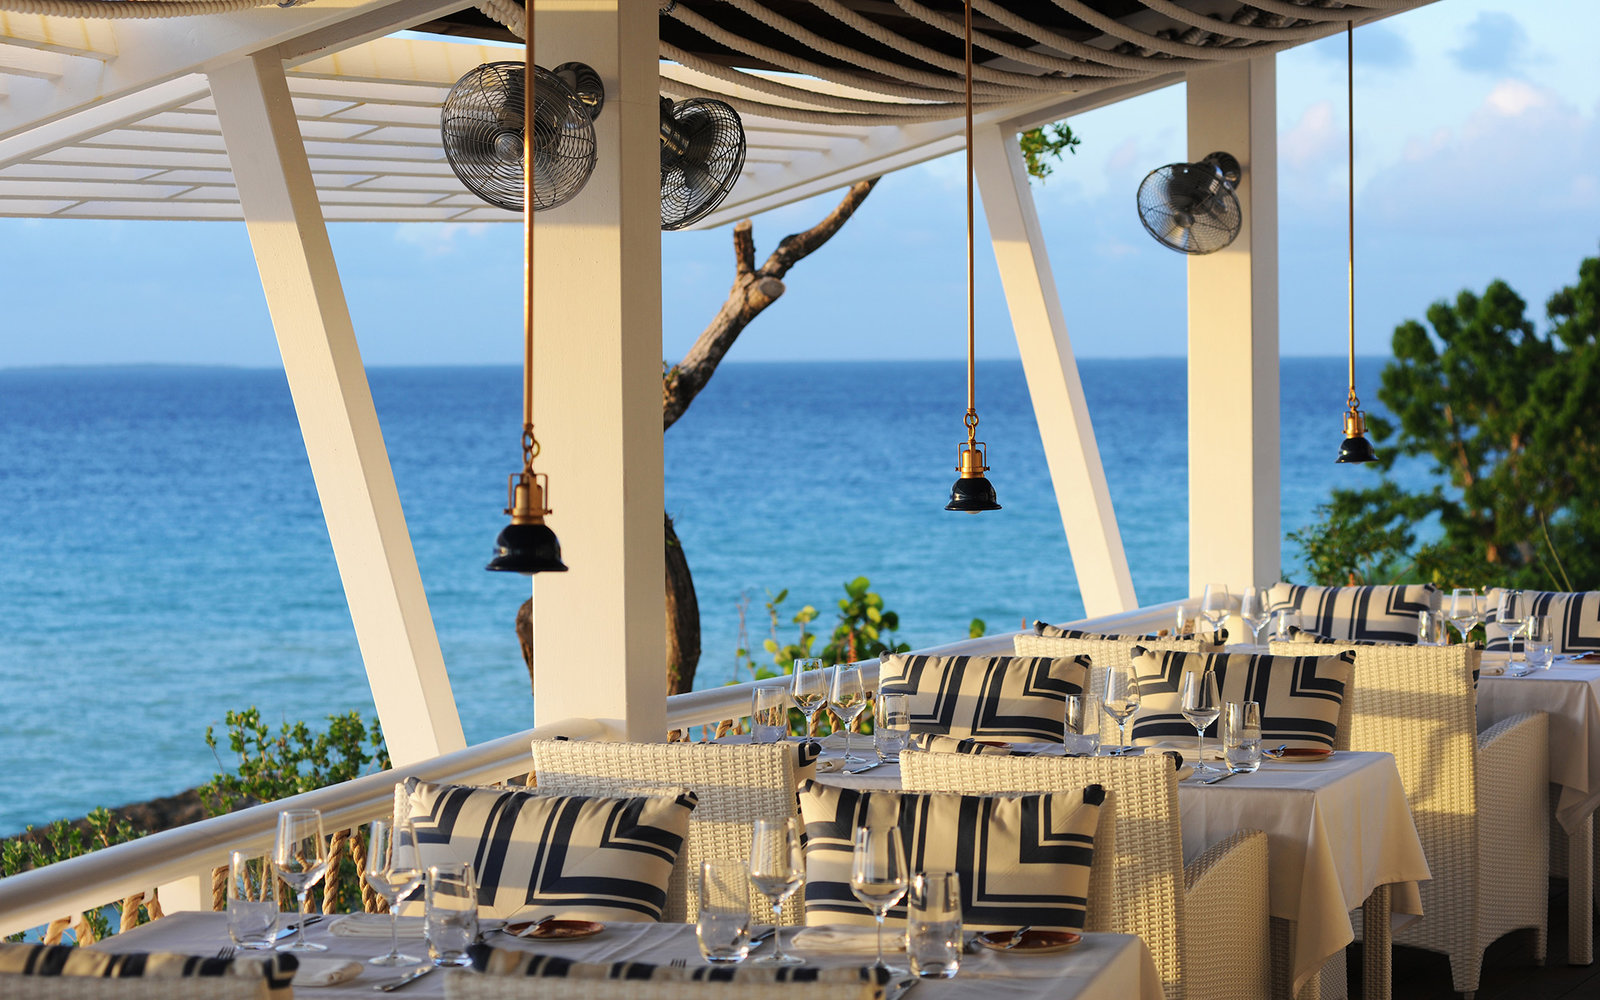 The Sunset Bar in Malliouhana, An Auberge Resort, Anguilla